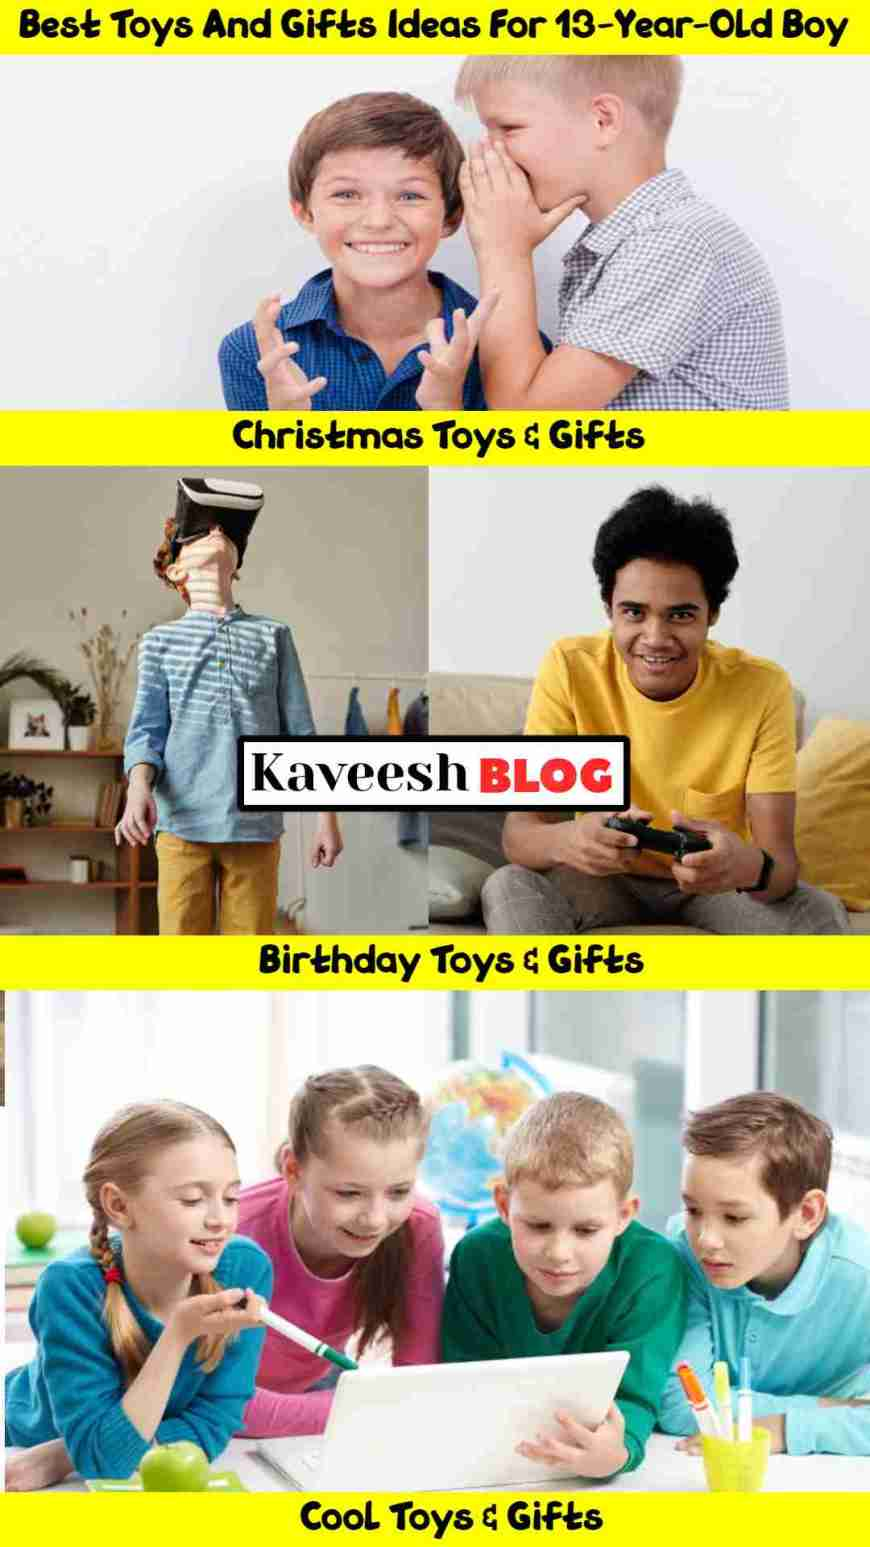 40 Best Gifts For 13 Year Old Boys In 2020 Toys Gifts